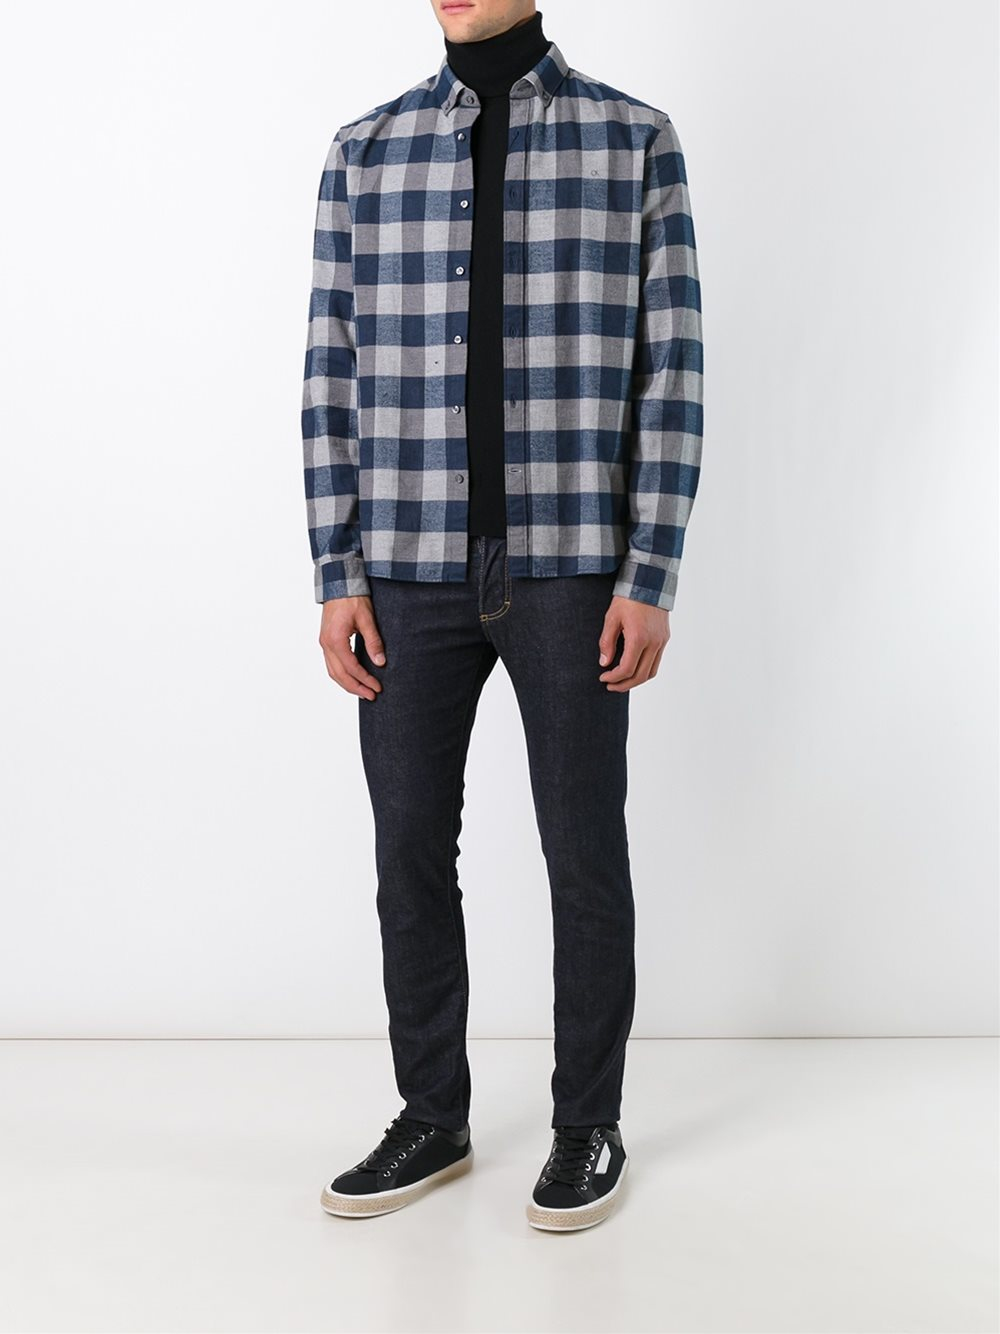 Lyst calvin klein jeans 39 galen 39 check flannel shirt in for Flannel shirt and jeans